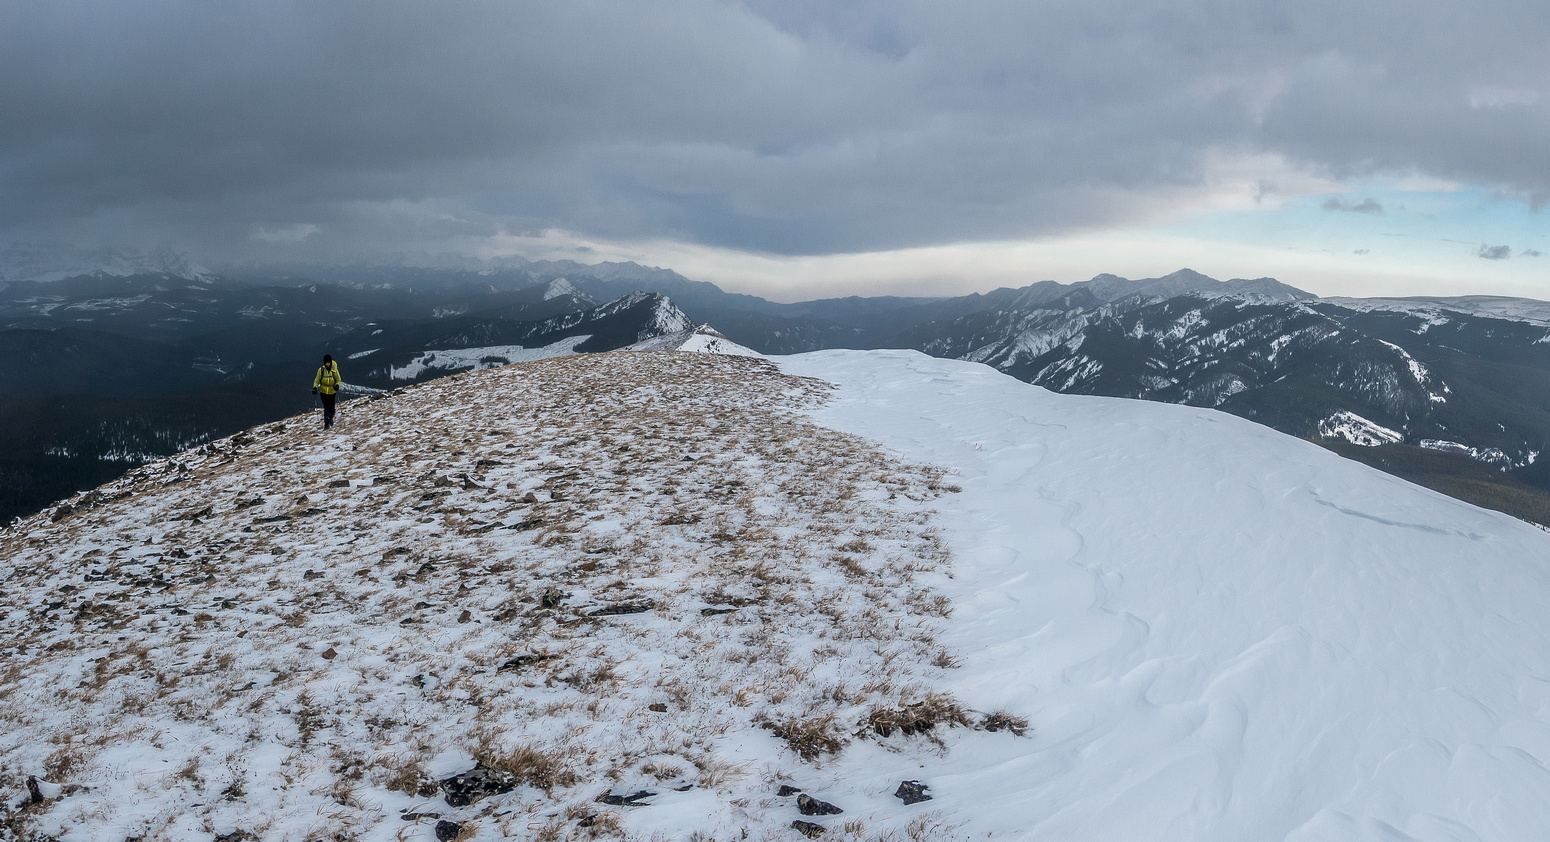 Looking north as Phil follows me up the ridge. Burke in the distance at right.